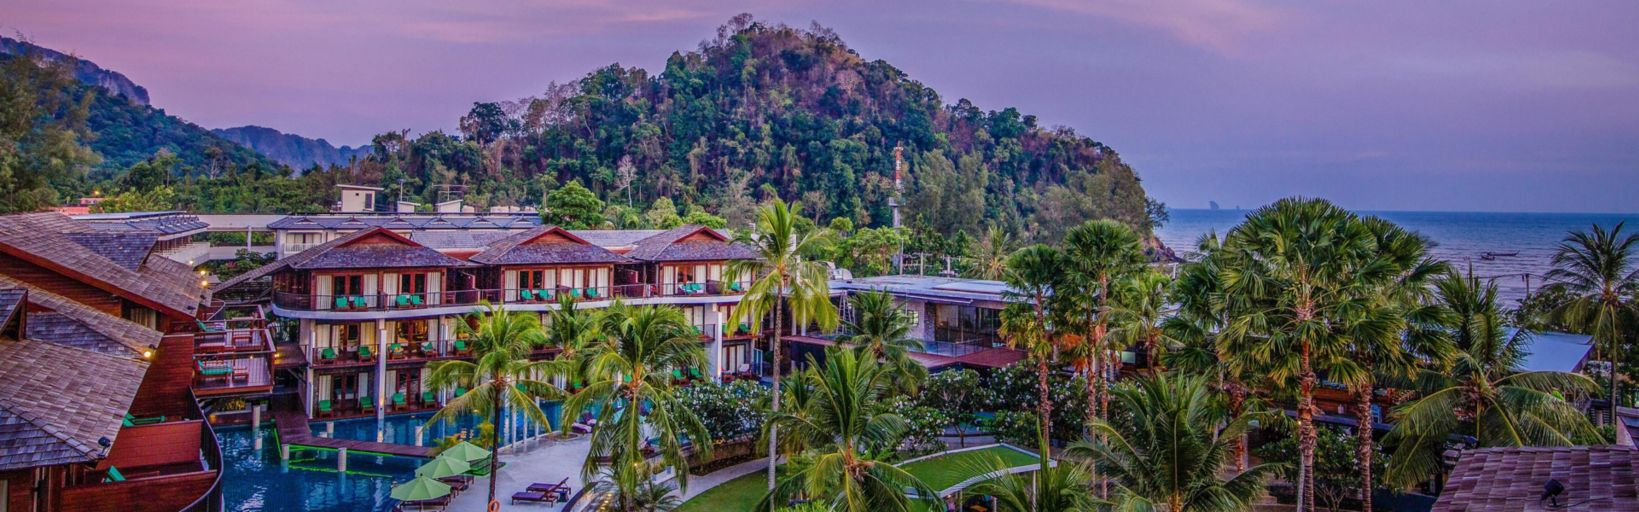 Panoramic Sunset View Hotel Garden Welcome To Holiday Inn Resort Krabi Ao Nang Beach